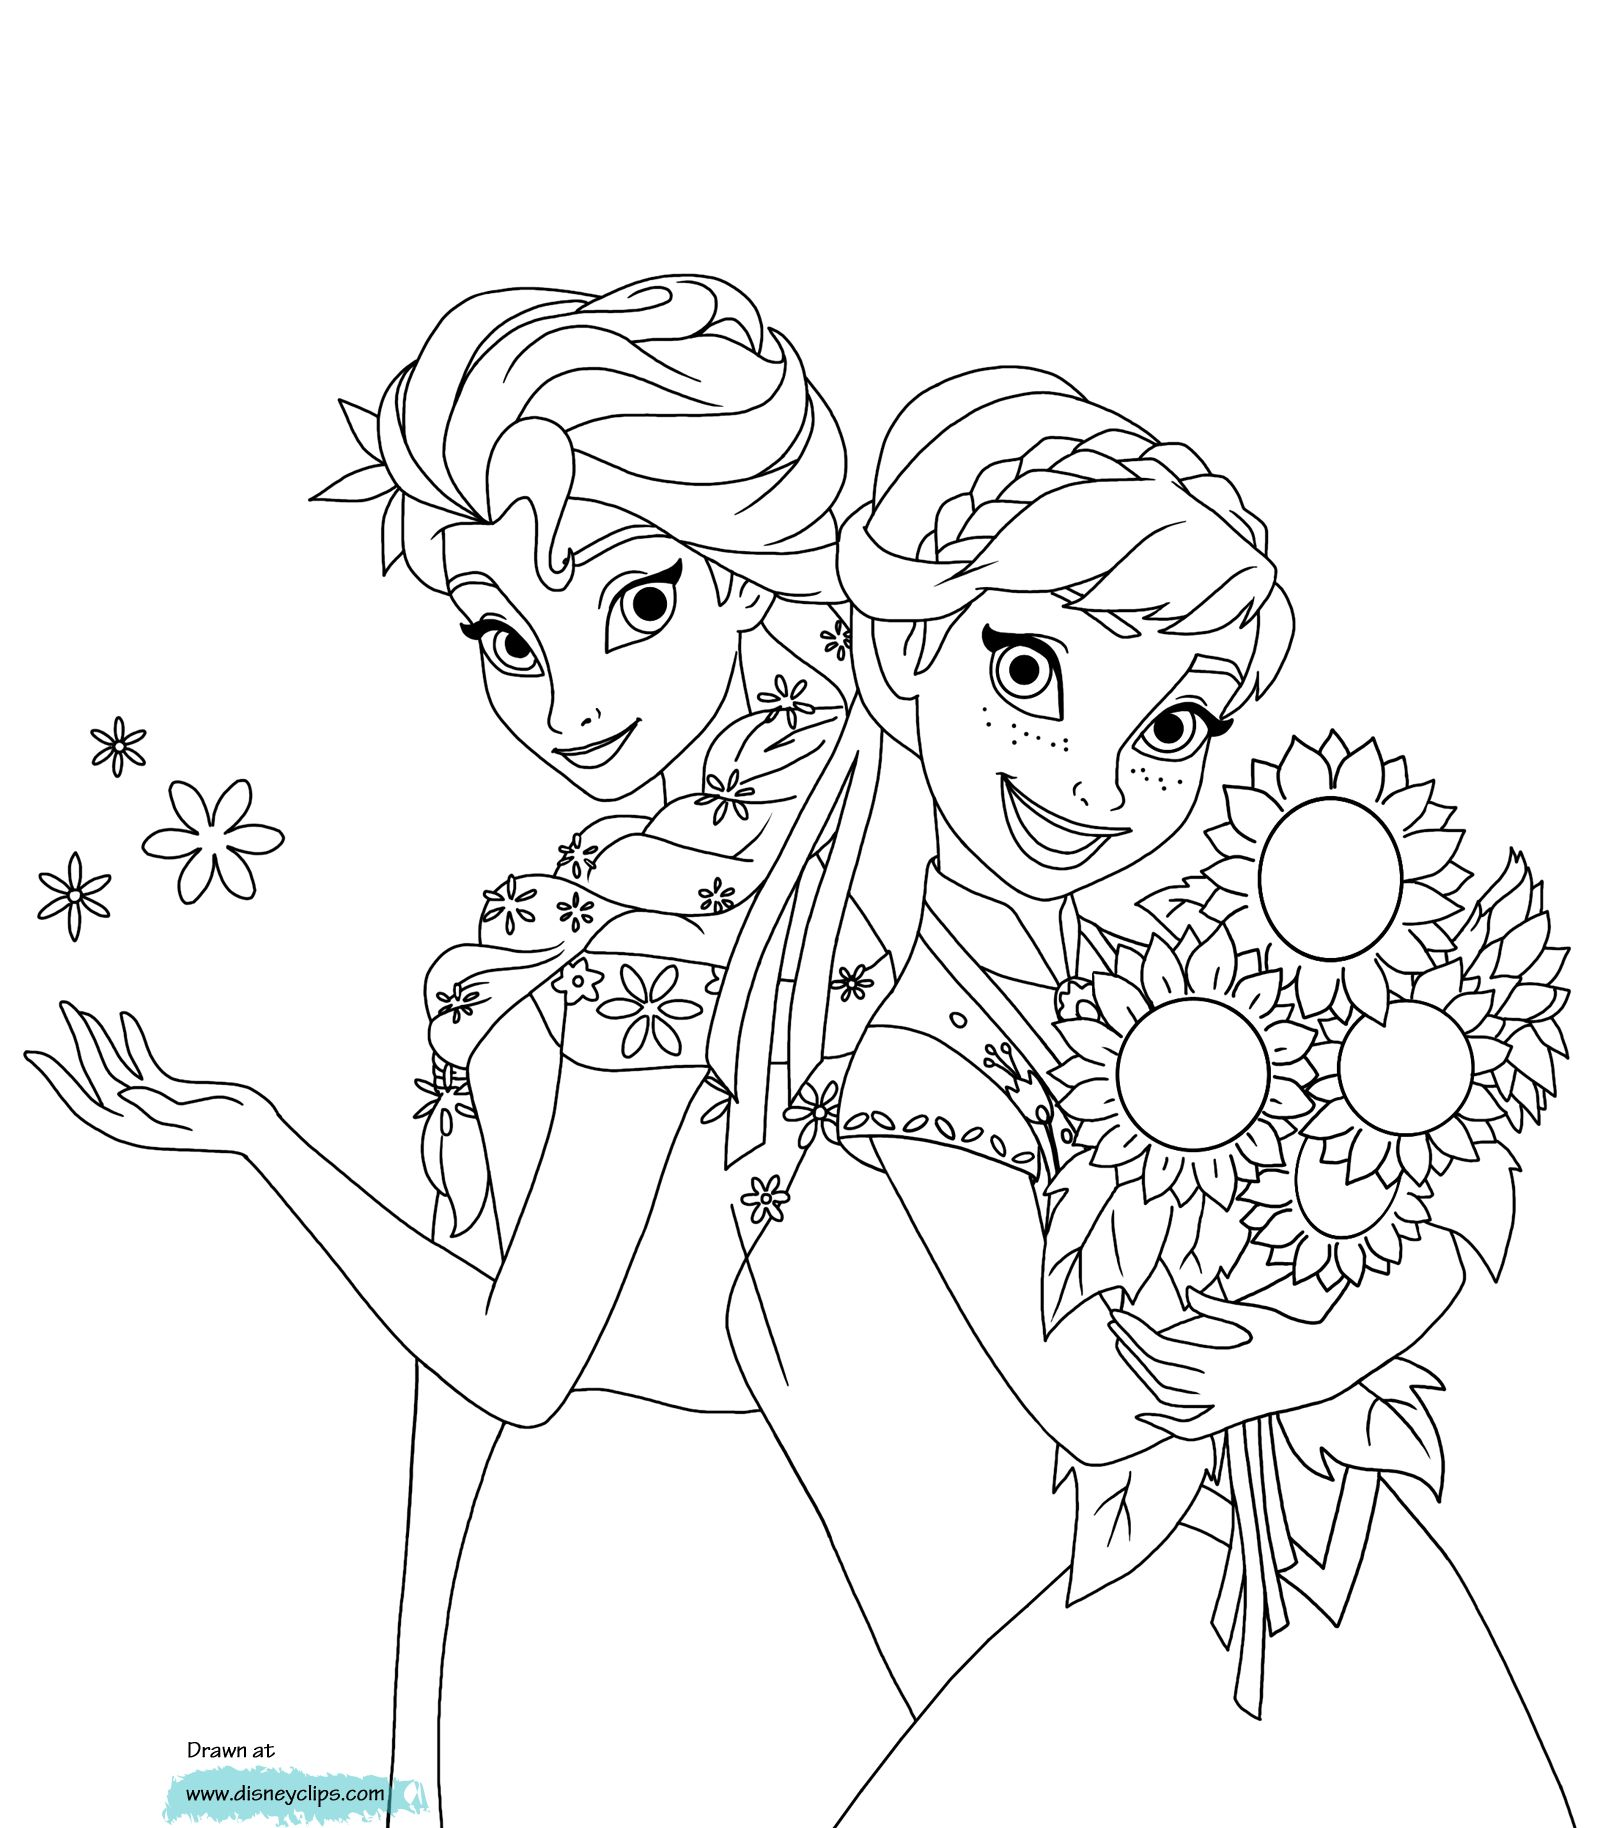 Coloring pages for frozen printable - Disney Frozen Coloring Sheets Frozen Coloring Pages Disney S Frozen Coloring Page Dinokids Org Disney Frozen Coloring Sheets Pinterest Disney